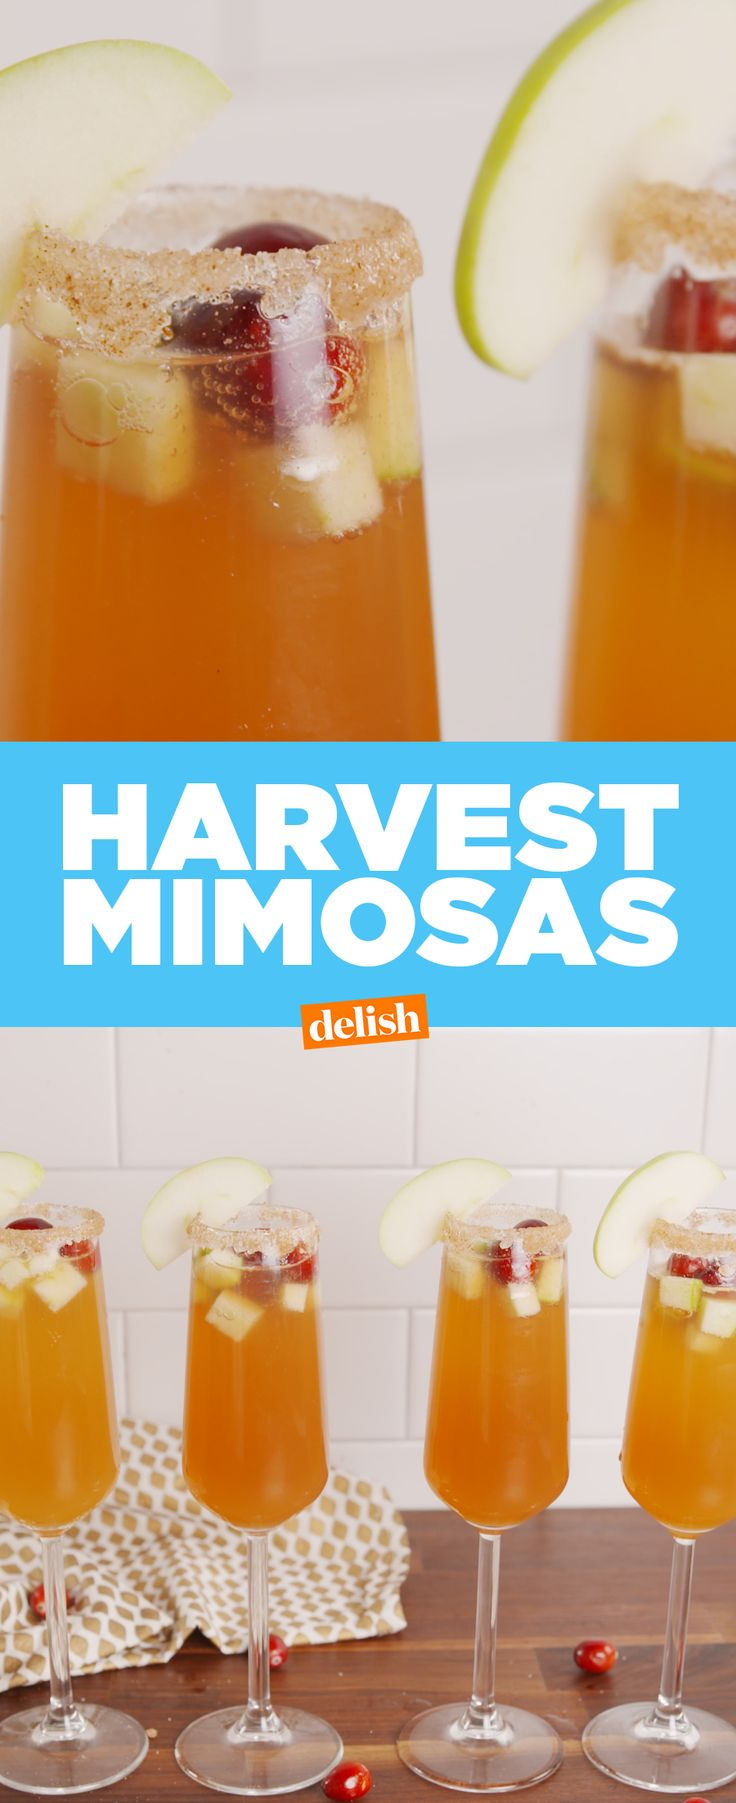 Harvest Mimosas are the essential fall brunch drink. Get the recipe at Delish.com. #brunch #mimosas #alcohol #Cocktail #recipes #EasyRecipes #fall #falldrinks